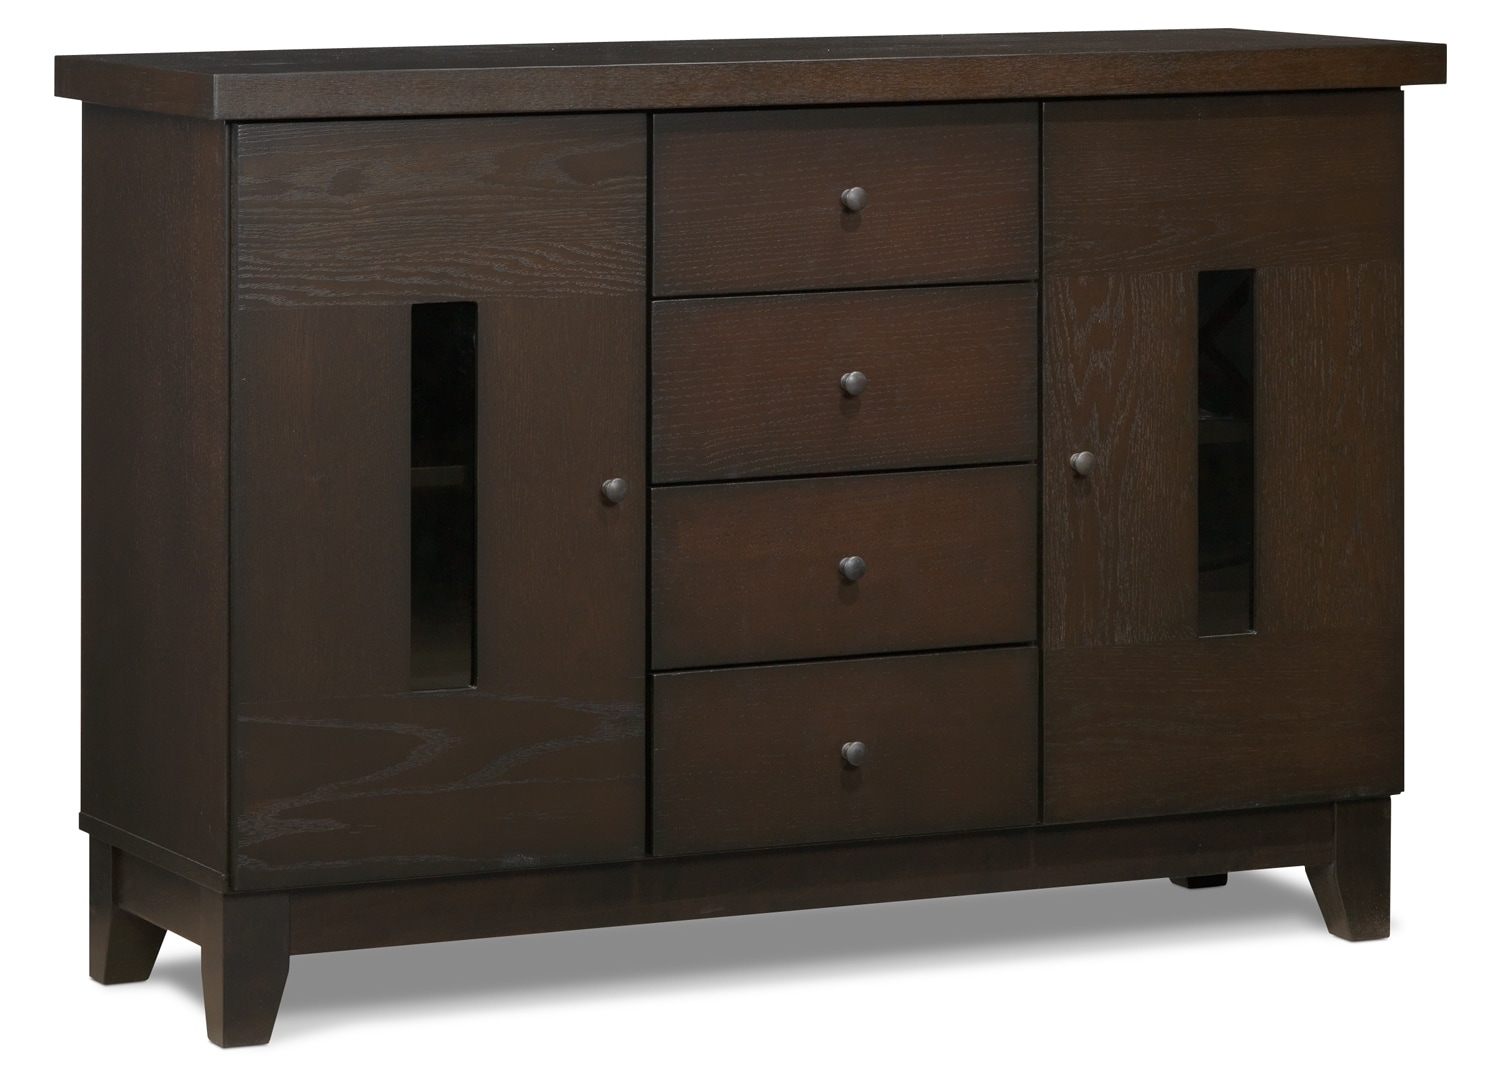 Dining Room Furniture - Grethell Server - Espresso